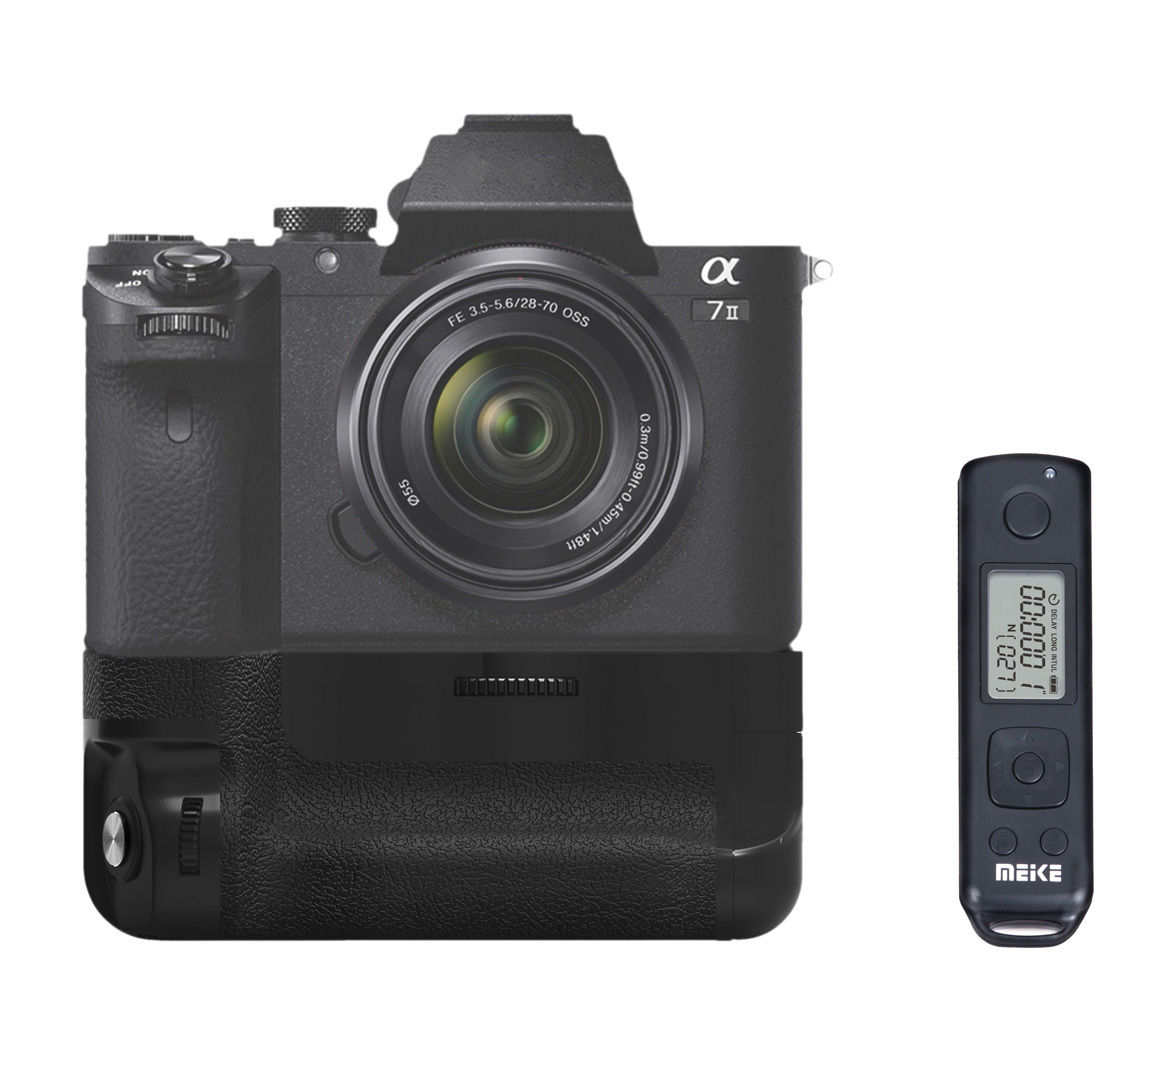 Meike MK-A7II Pro Built-in Wireless Control Battery Grip for Sony A7 II A7R II A7S II as for Sony VG-C2EM